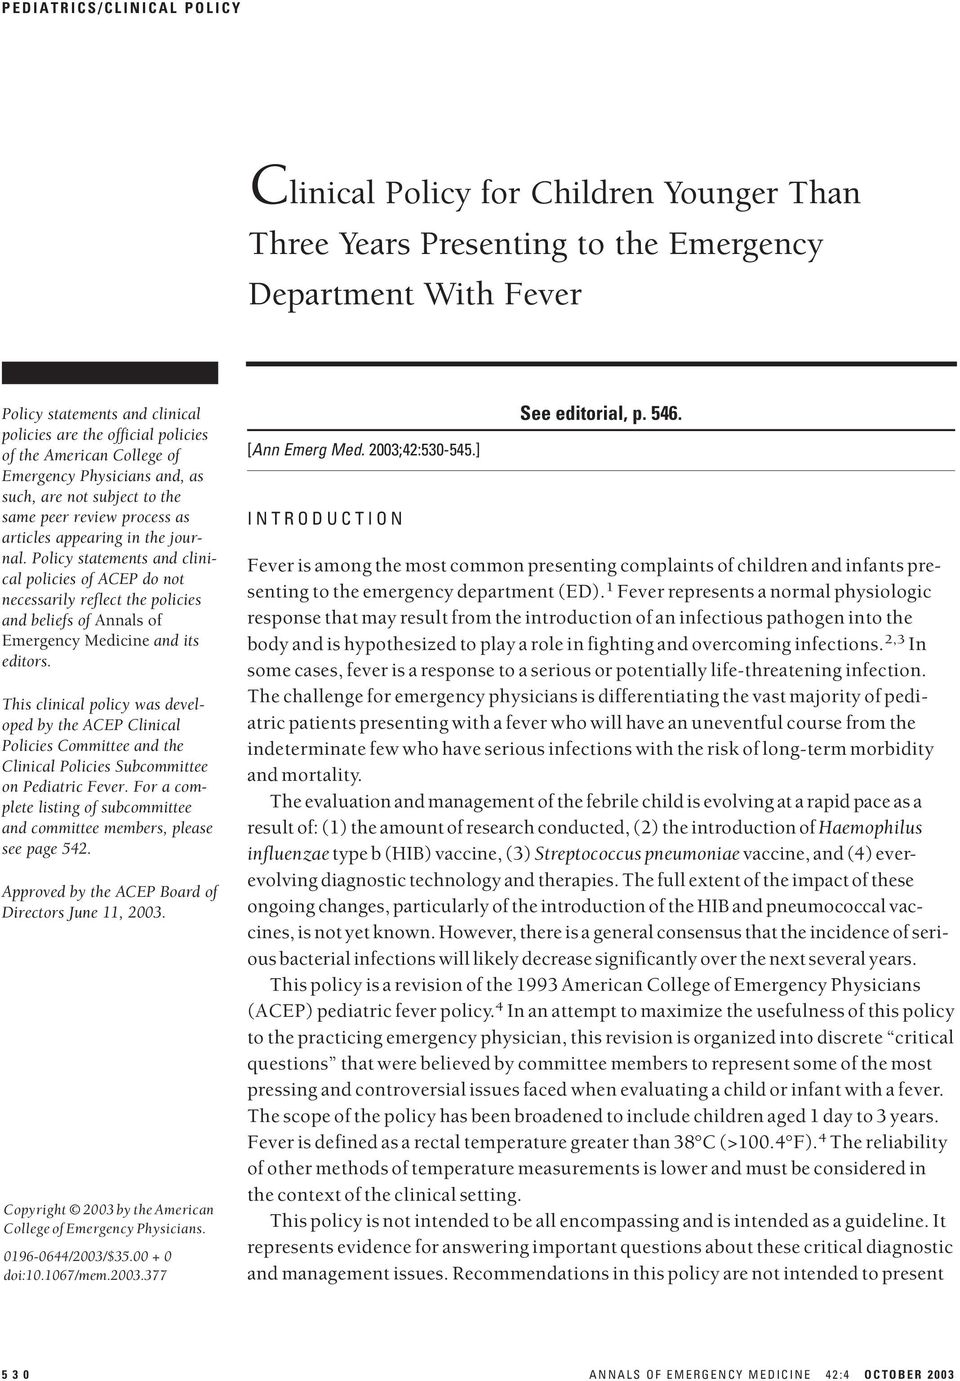 Policy statements and clinical policies of ACEP do not necessarily reflect the policies and beliefs of Annals of Emergency Medicine and its editors.